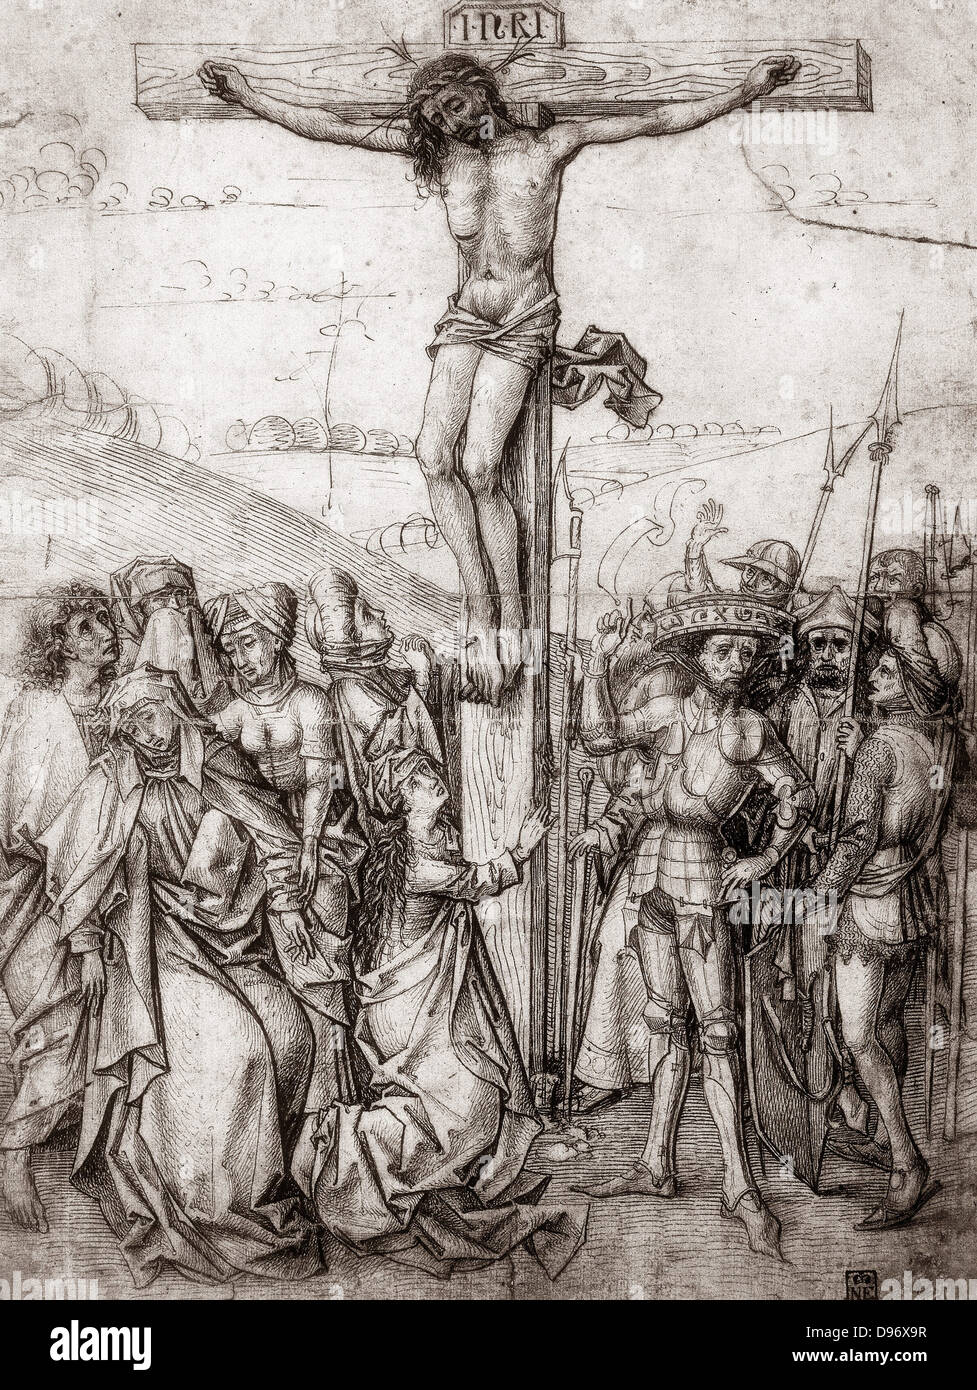 Christ on the Cross. Master of Nuremberg, c1480. Pen and sepia ink. Drawing. - Stock Image